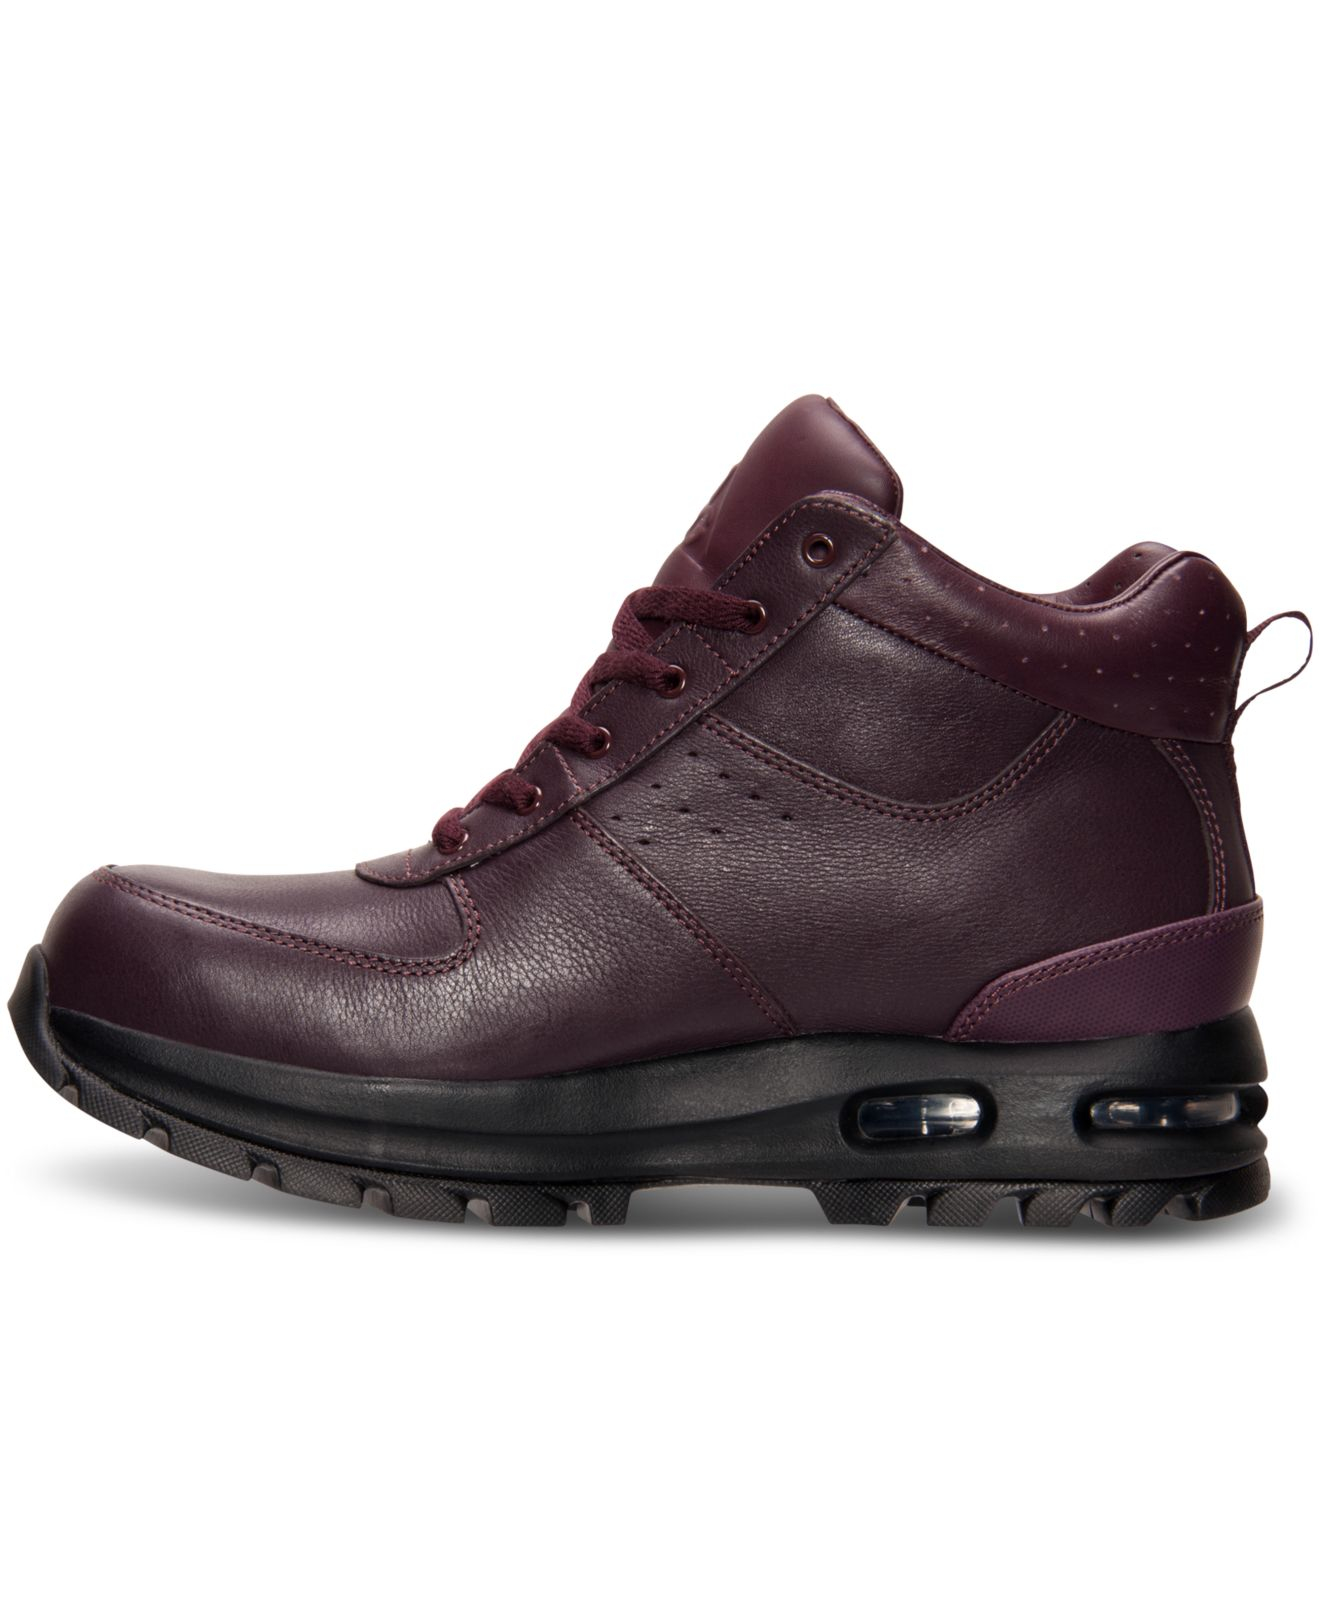 72d65887c8 Nike Men's Air Max Goaterra Boots From Finish Line in Purple for Men ...